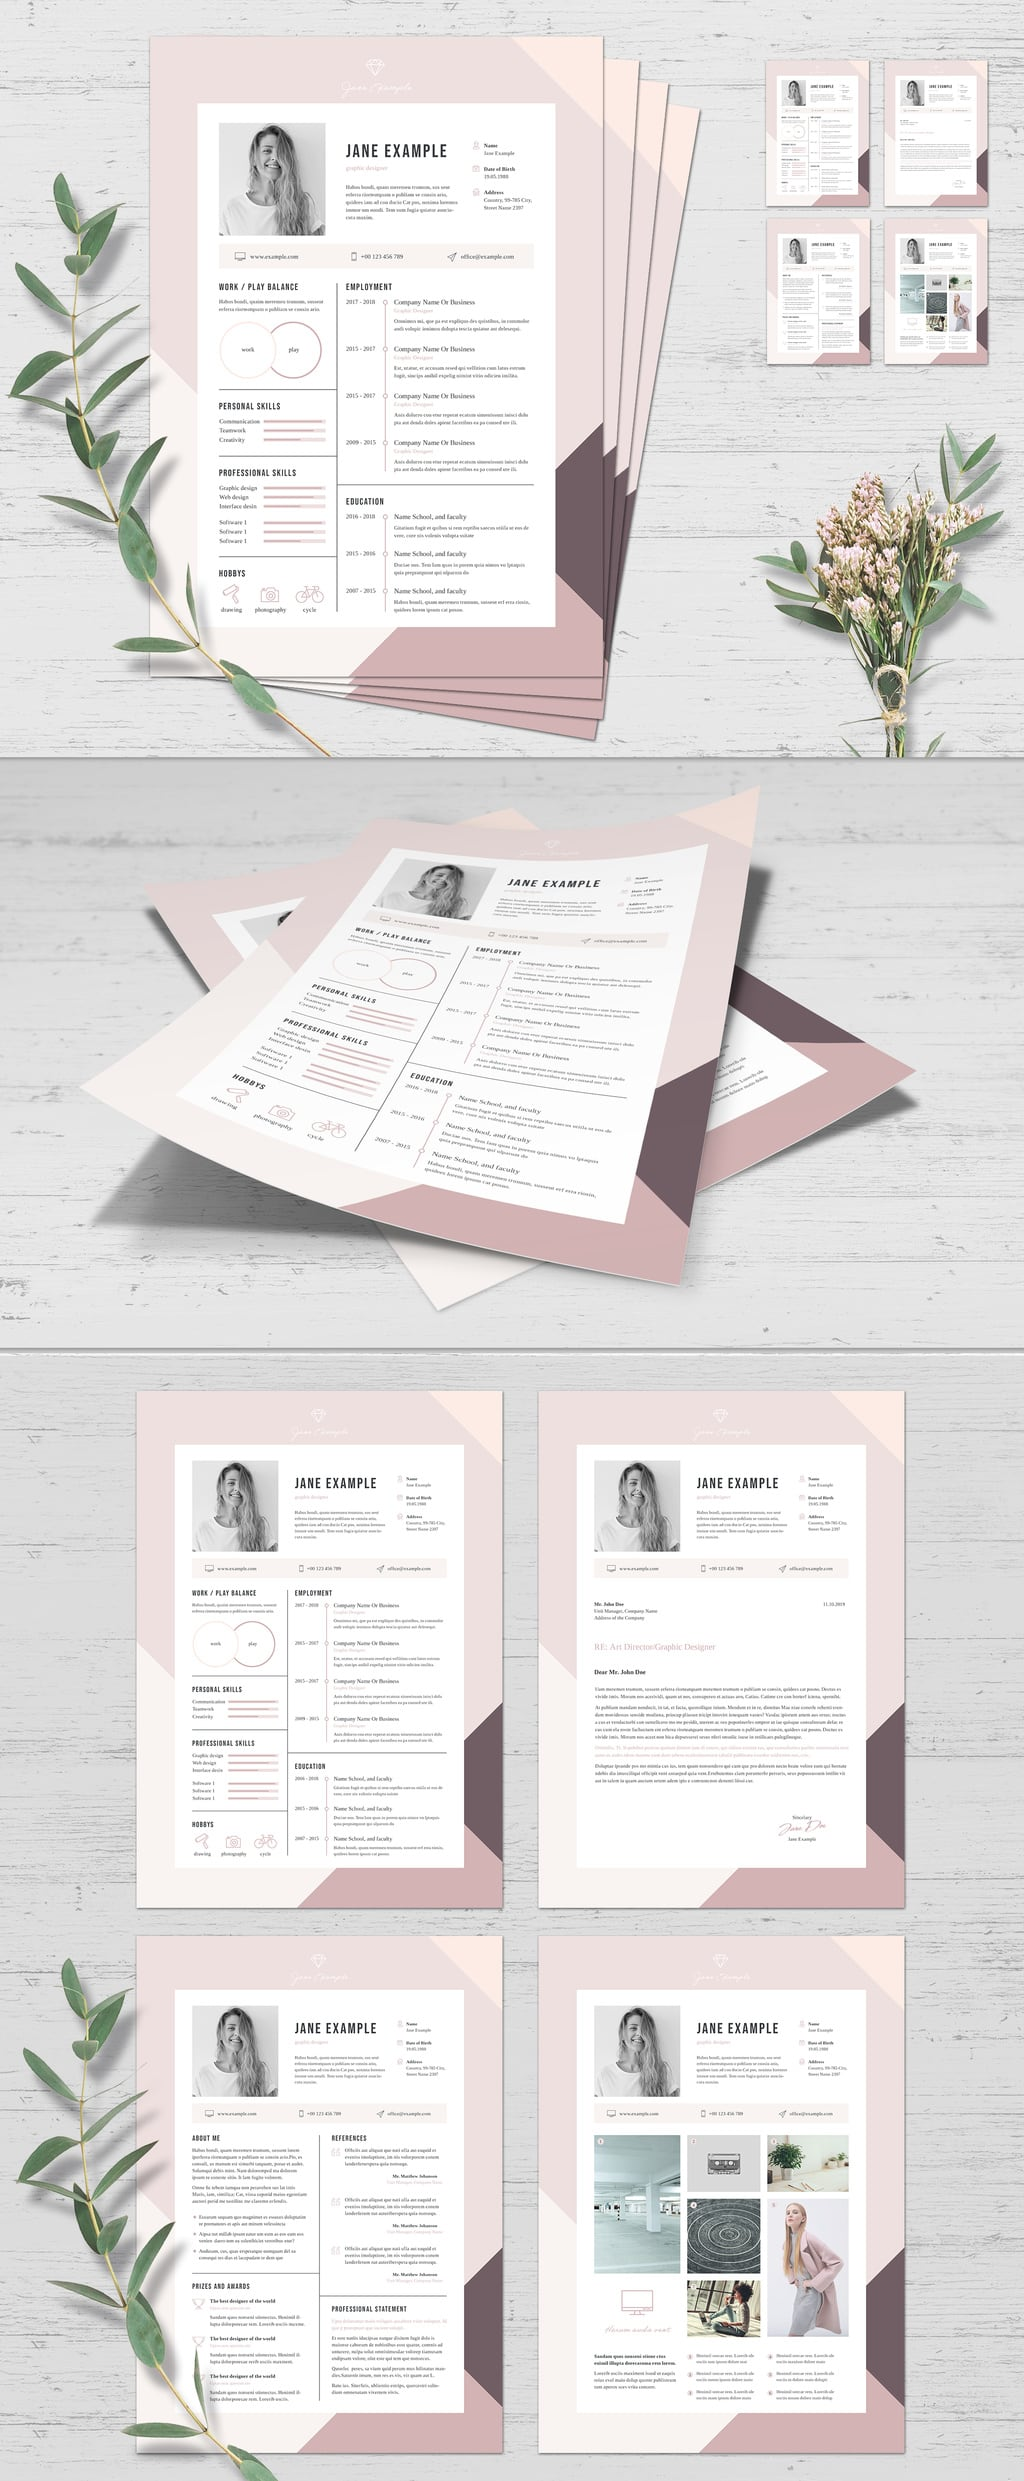 InDesign resume template with showcases